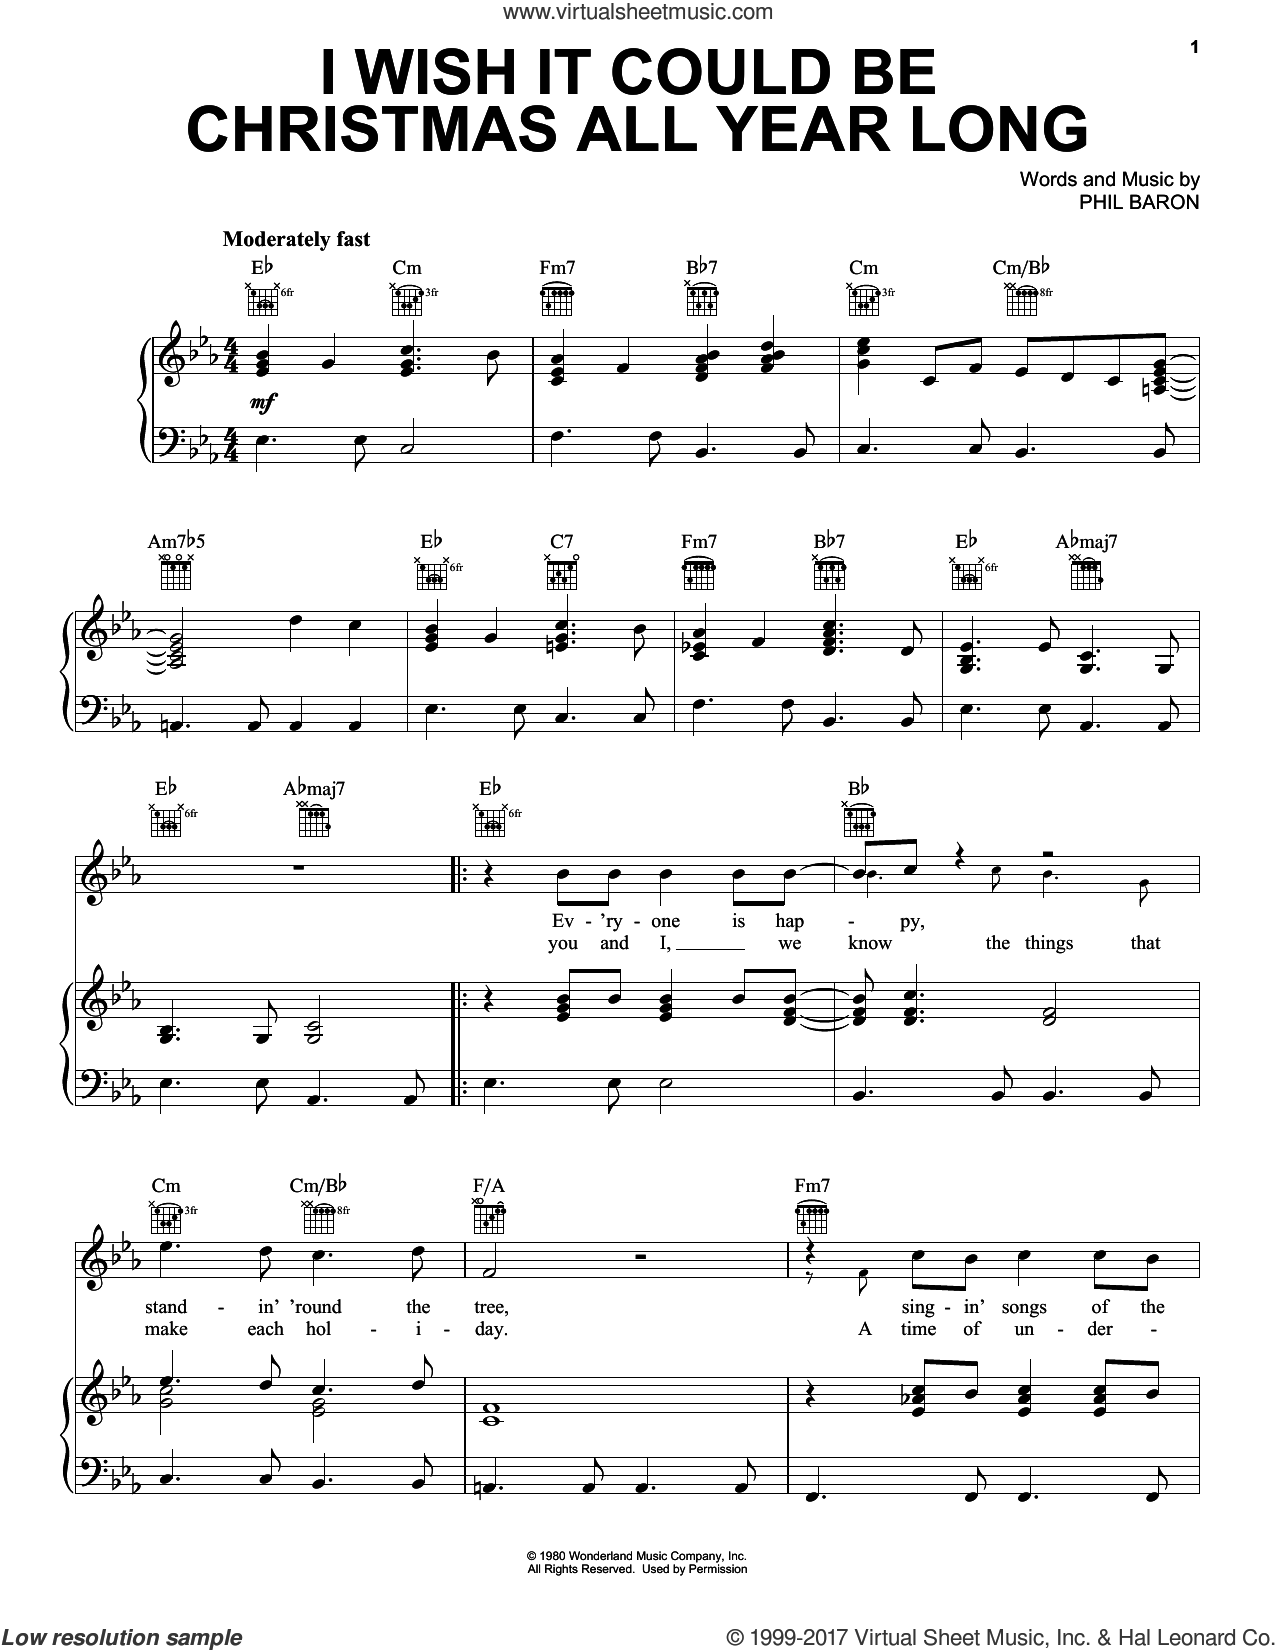 I Wish It Could Be Christmas All Year Long sheet music for voice, piano or guitar by Phil Baron. Score Image Preview.